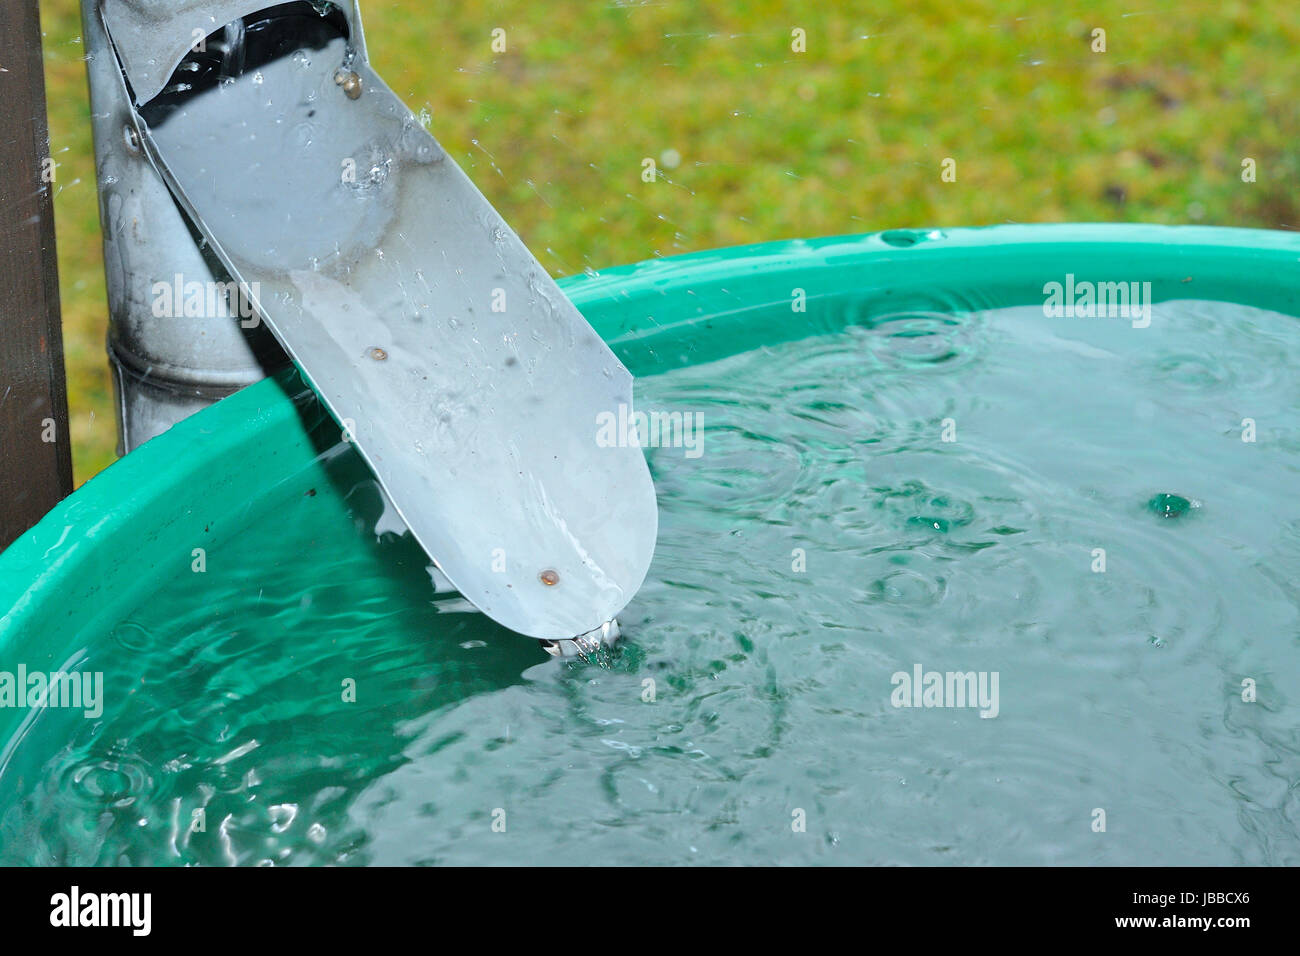 Gutter Downspout Stock Photos Gutter Downspout Stock Images Page